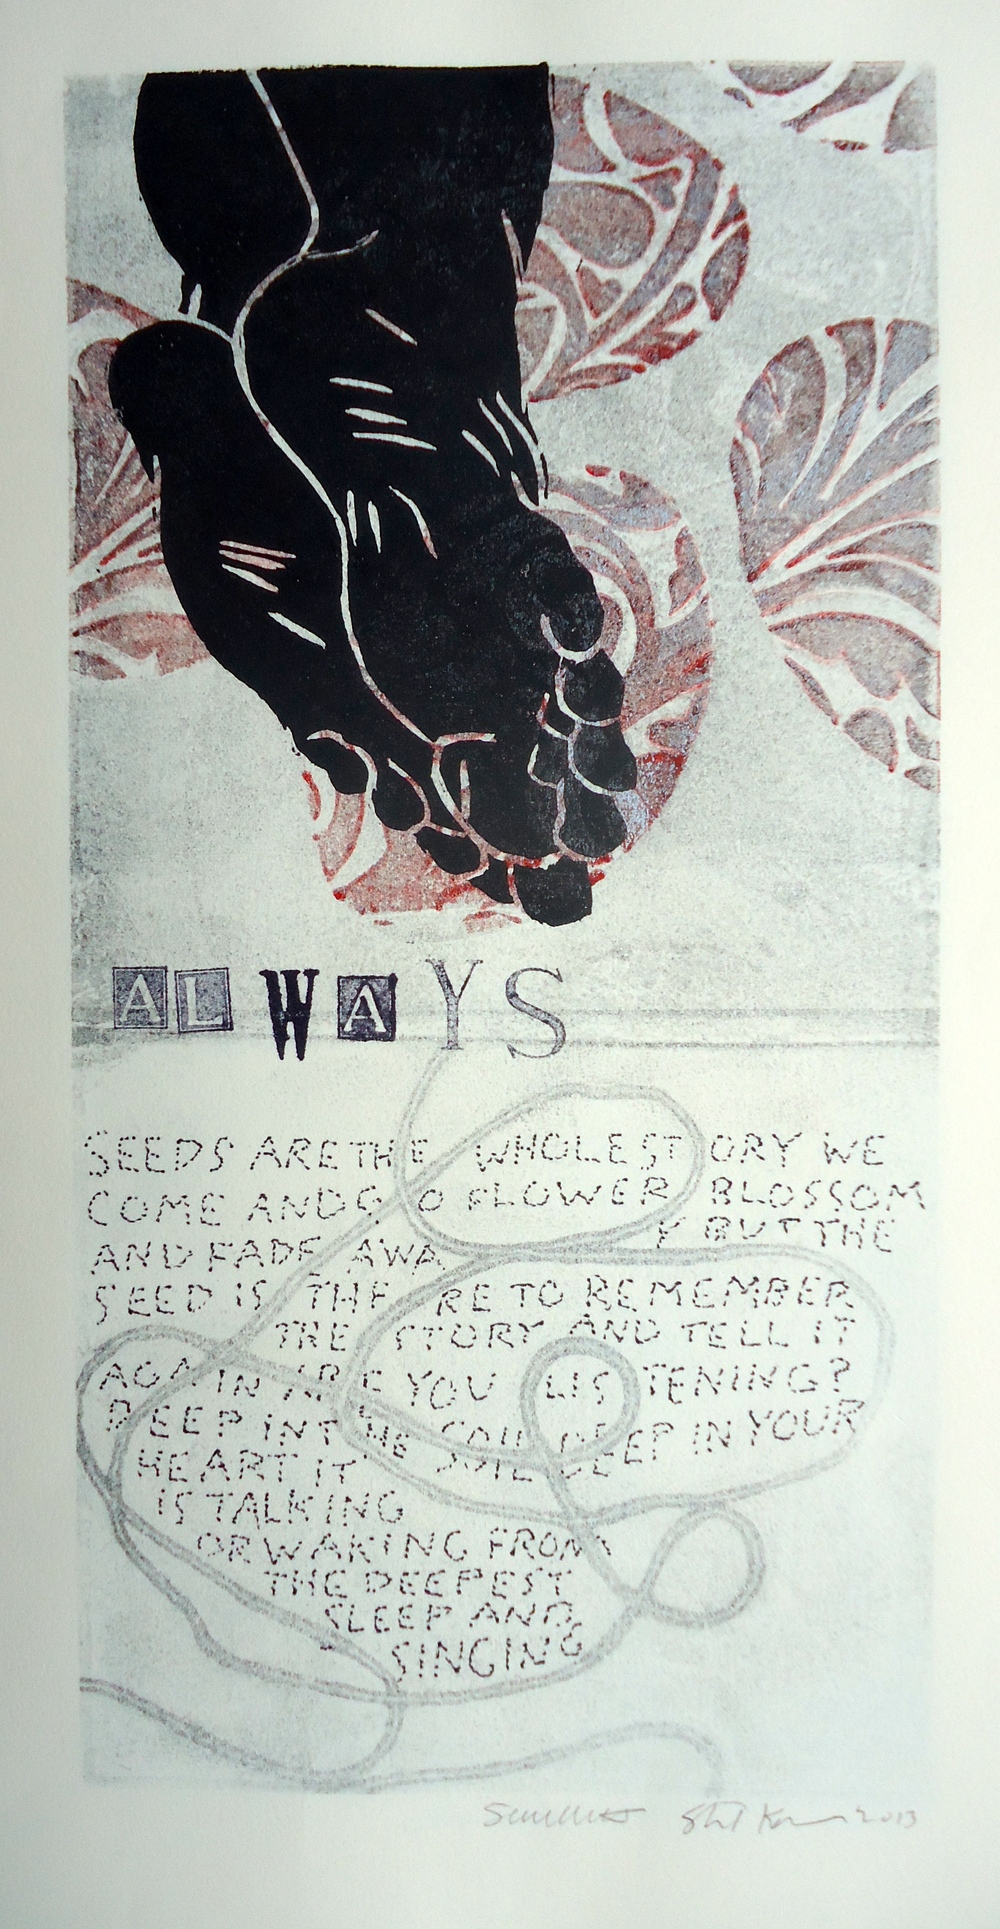 Always   6 x 12 inches  mixed media  image: Susan Webster  hand written and stamped text: Stuart Kestenbaum  2013